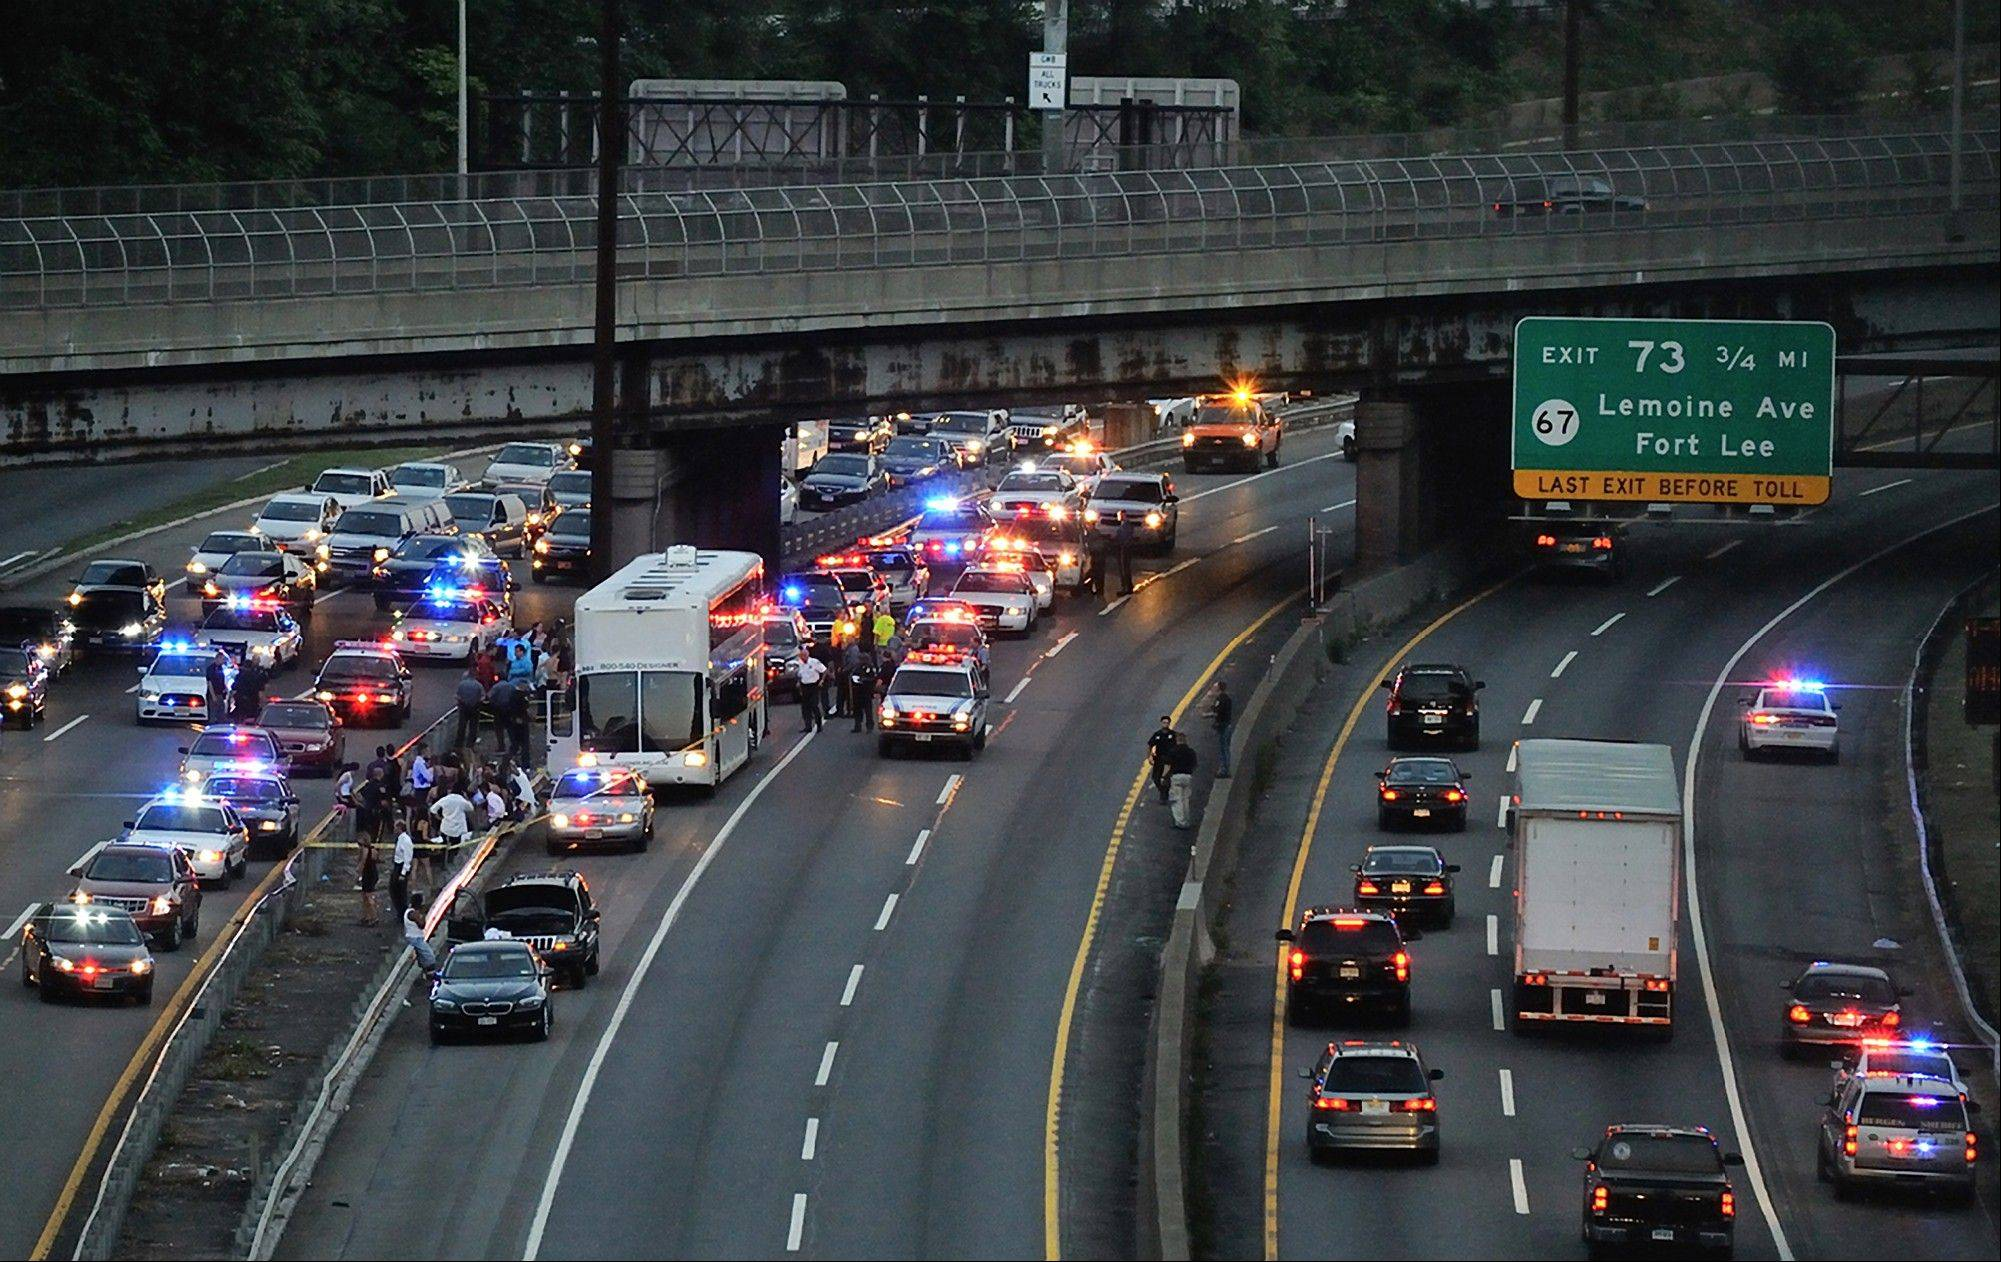 In this Friday, Aug. 31, 2012 photo, emergency personnel work the scene where a teenager headed to a sweet 16 party was killed after he stuck his head out of the emergency hatch of a double-decker bus and hit the underside of a highway overpass, along Interstate 95, in Fort Lee, N.J.